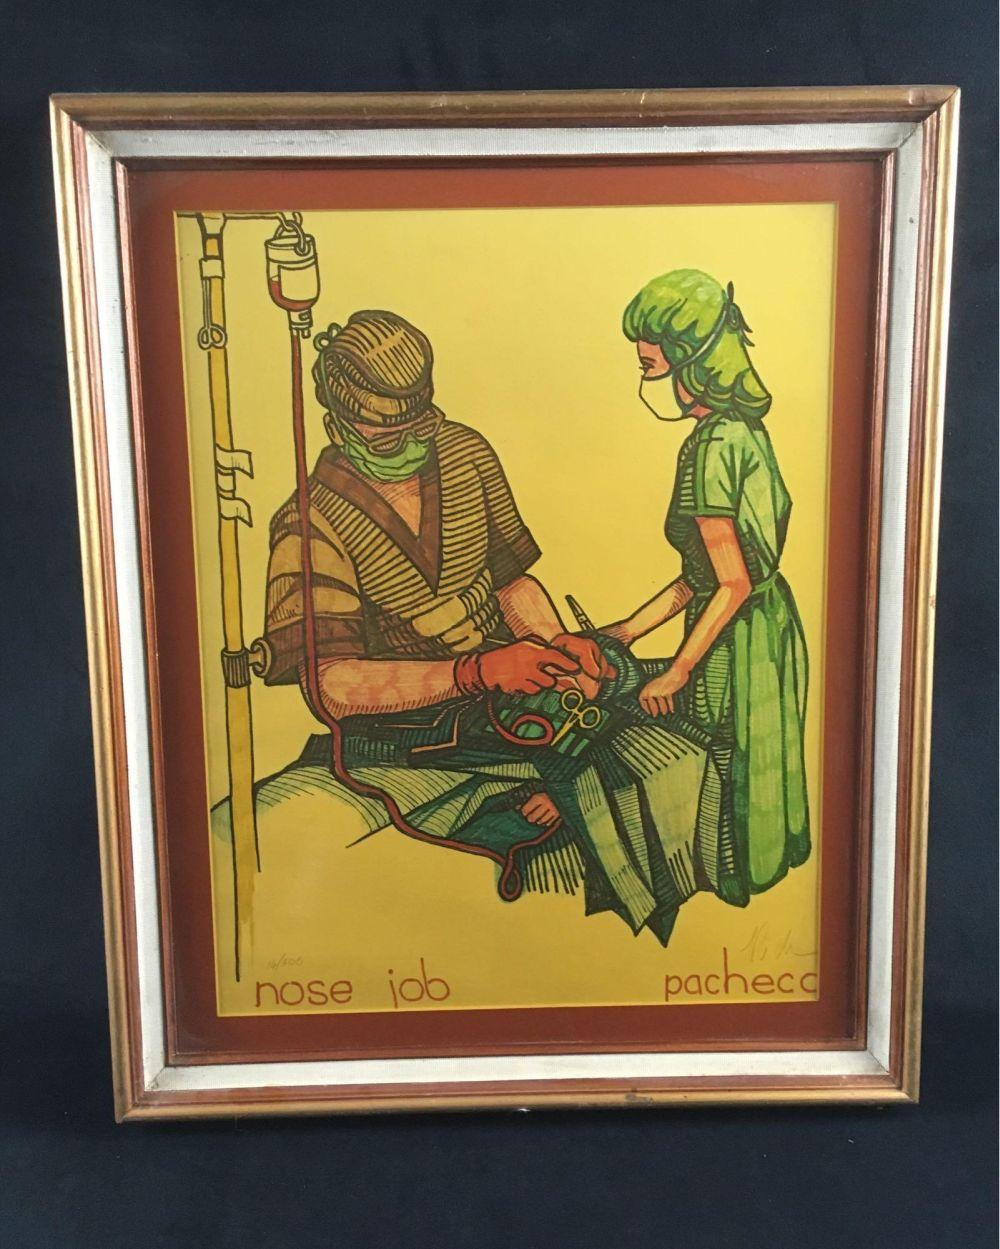 Numbered and Signed Lithograph Print, Nose Jobby The Fight Doctor Ferdie Pacheco